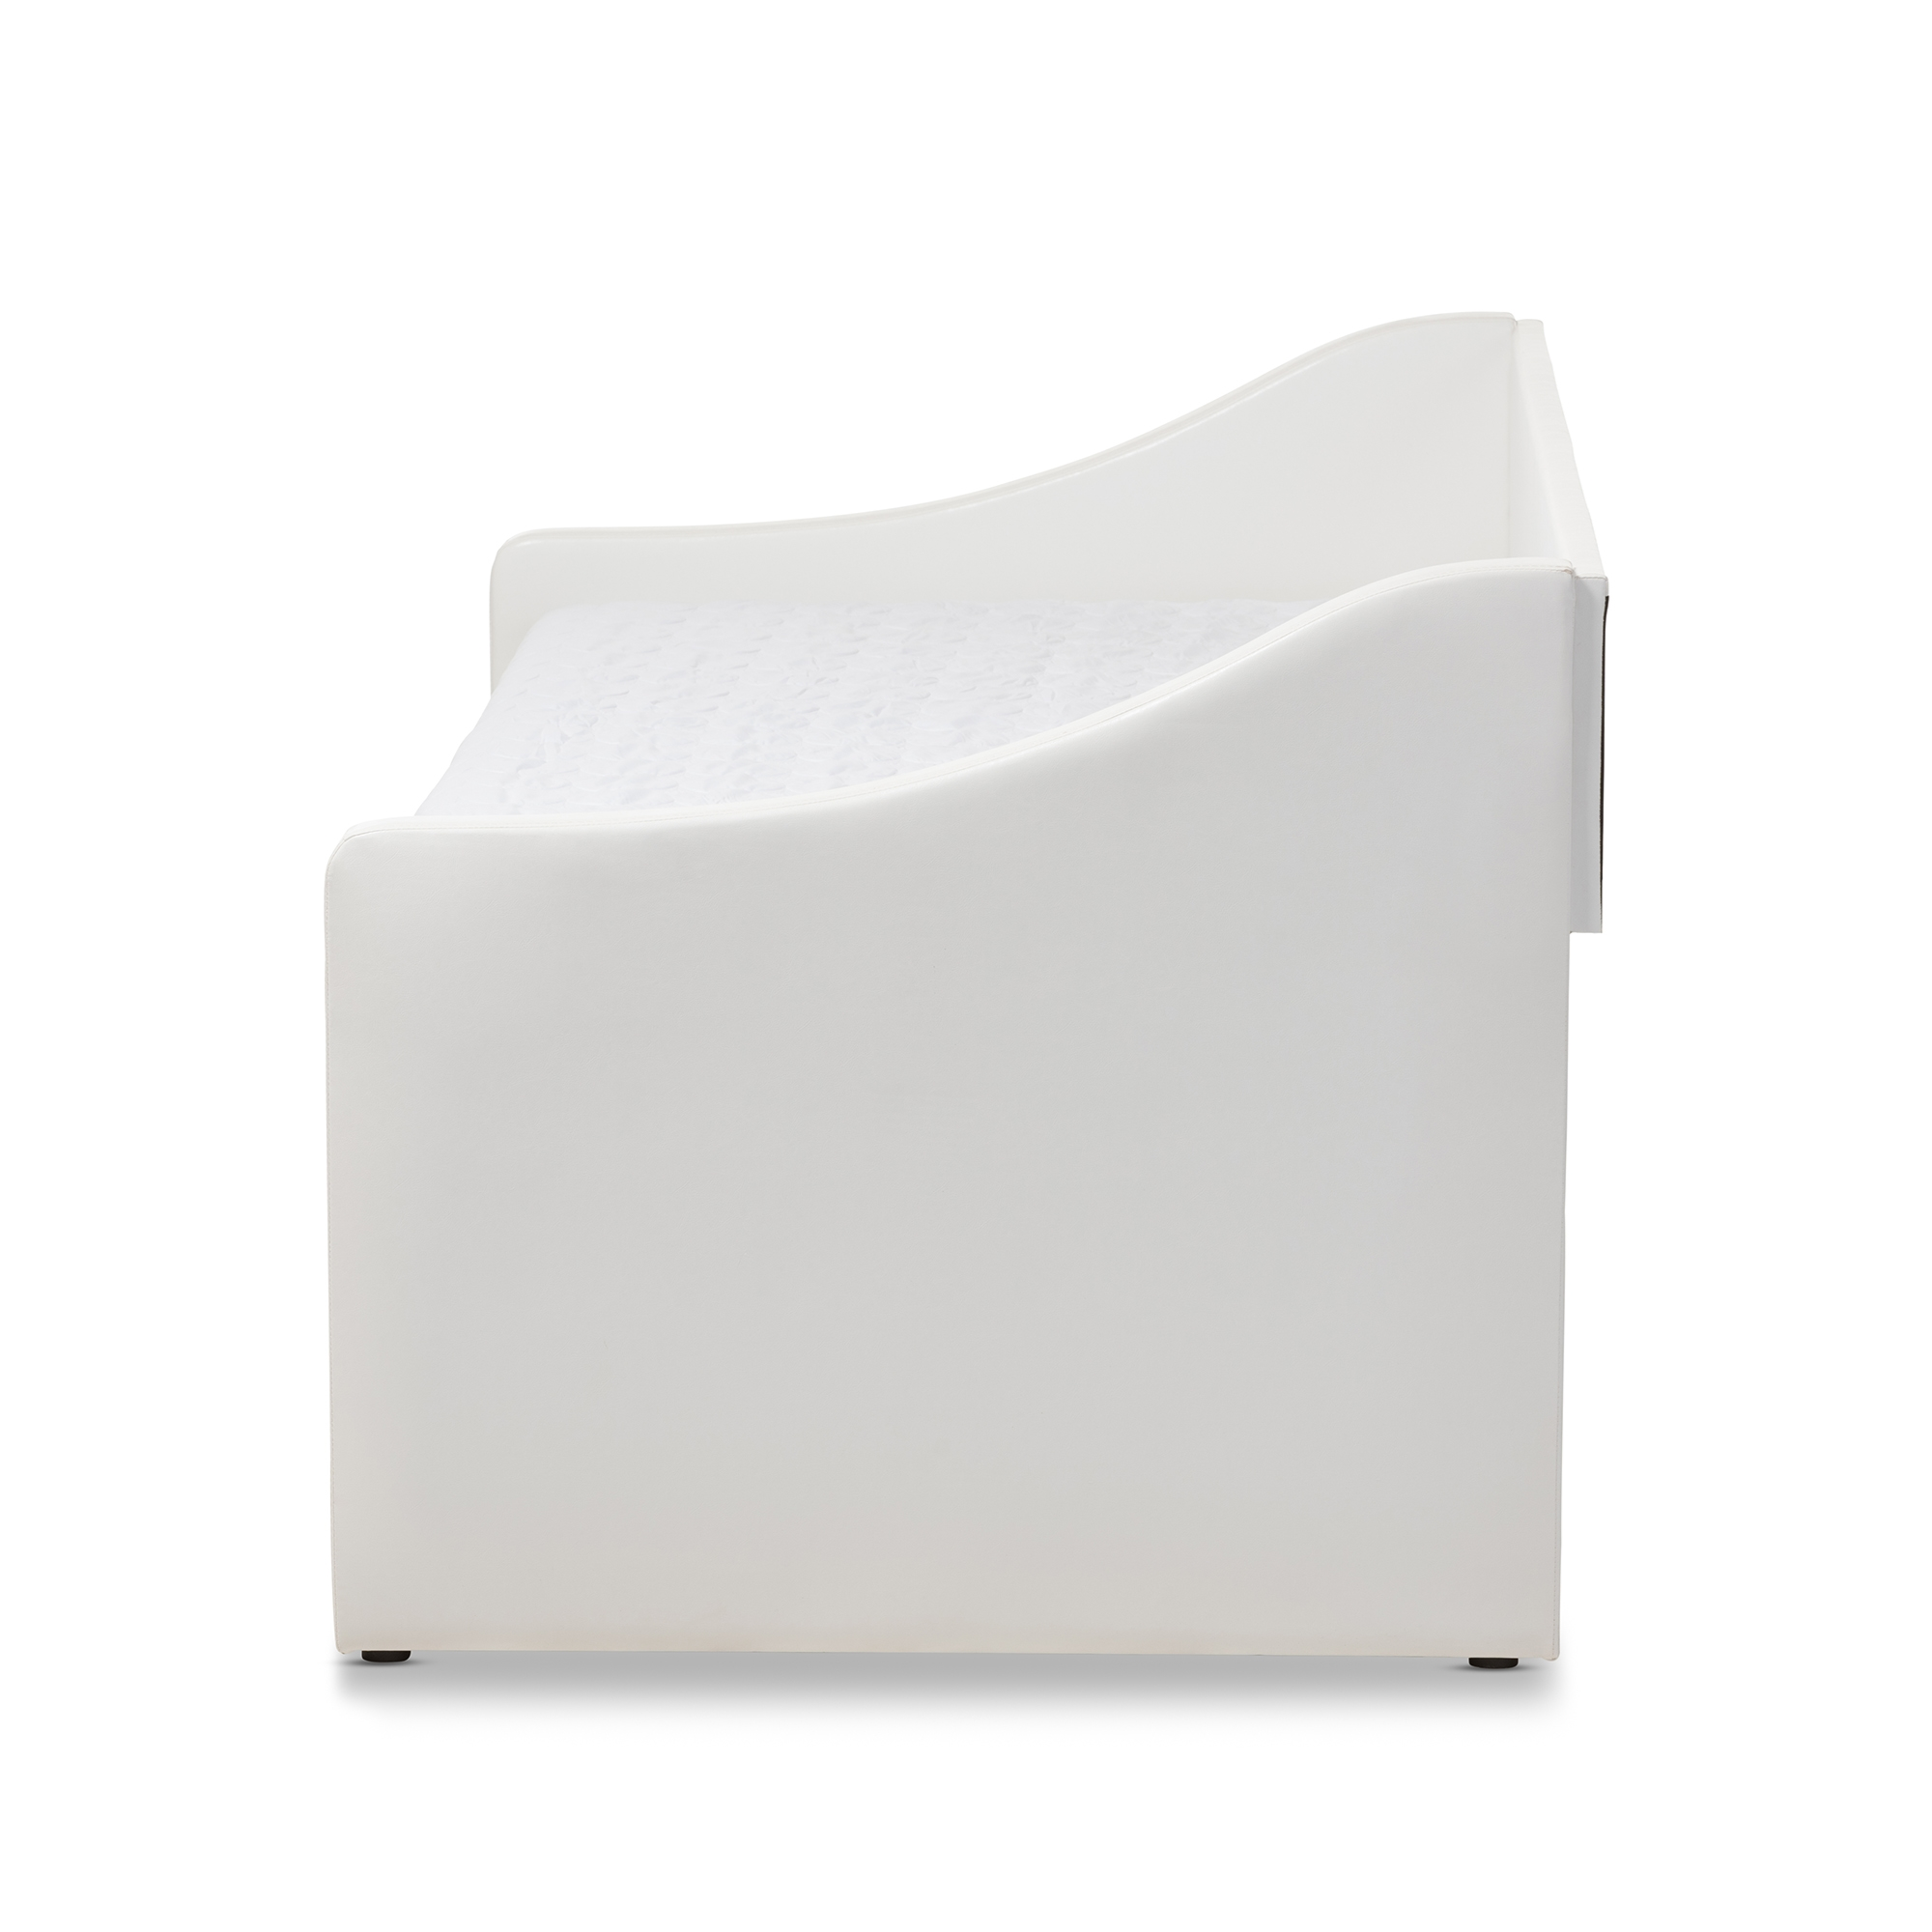 baxton studio barnstorm modern and white faux leather upholstered daybed with guest trundle bed - Modern Daybed